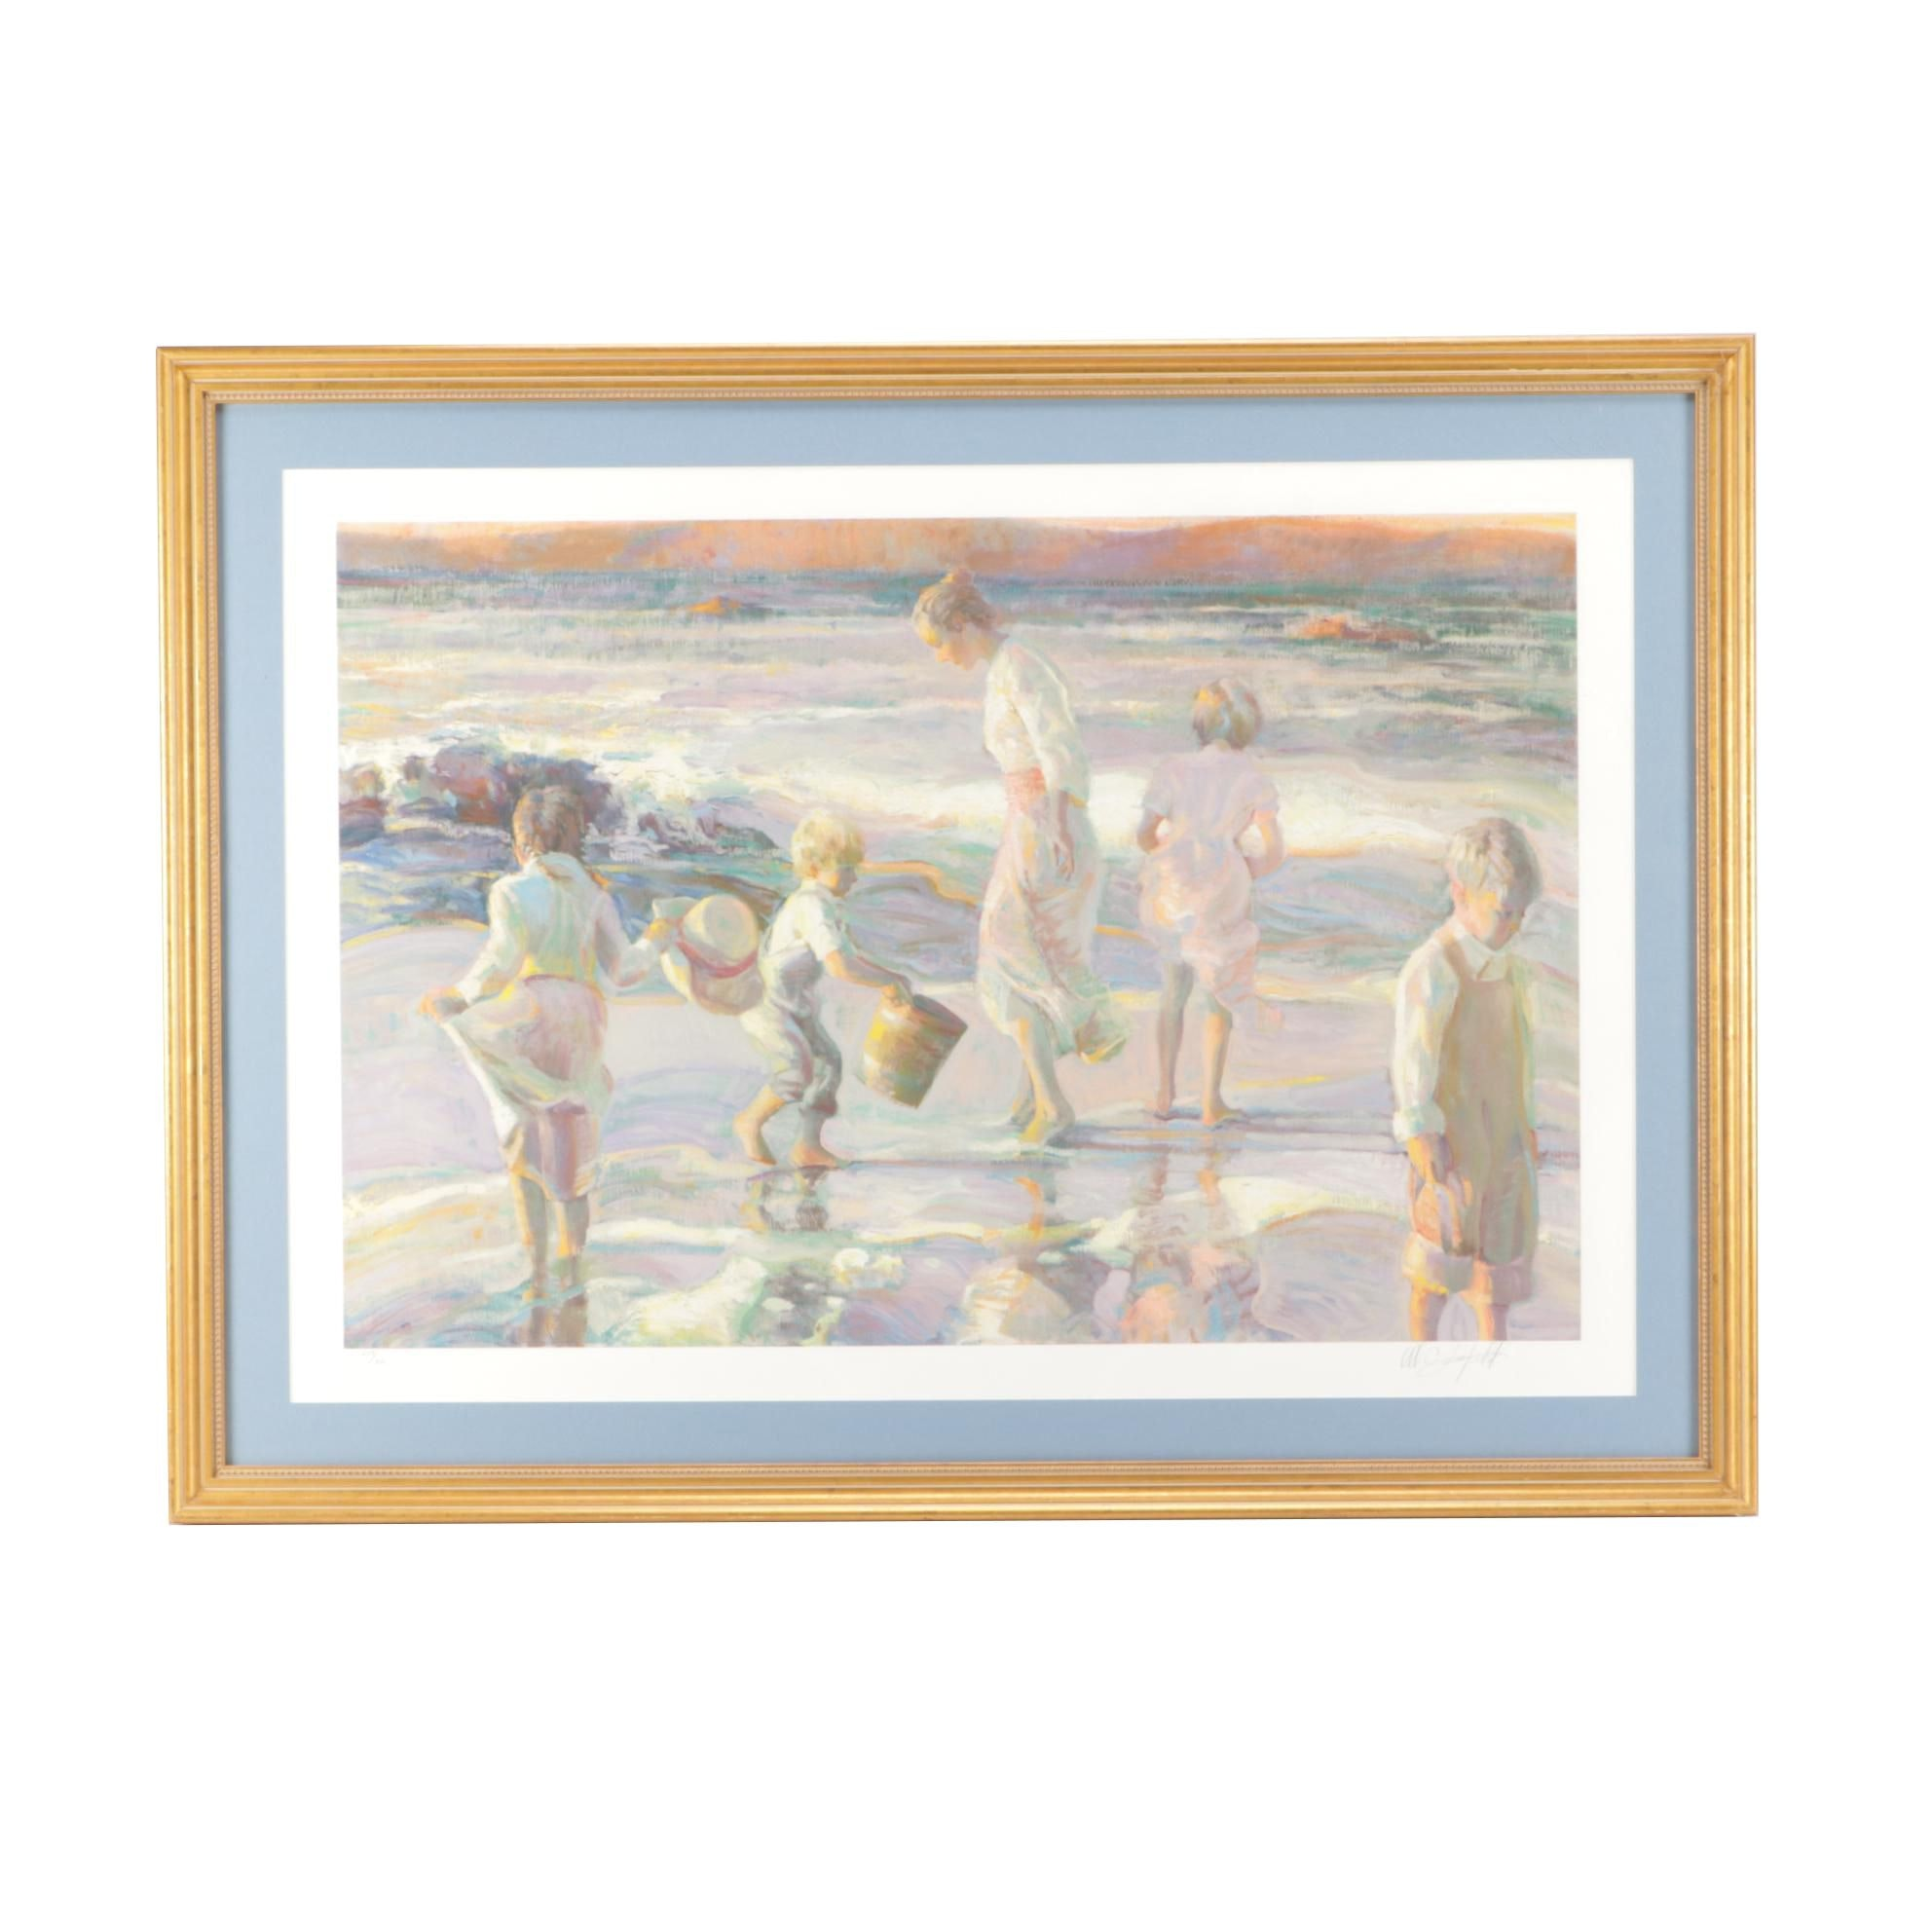 Limited Edition Serigraph of Children at Seashore